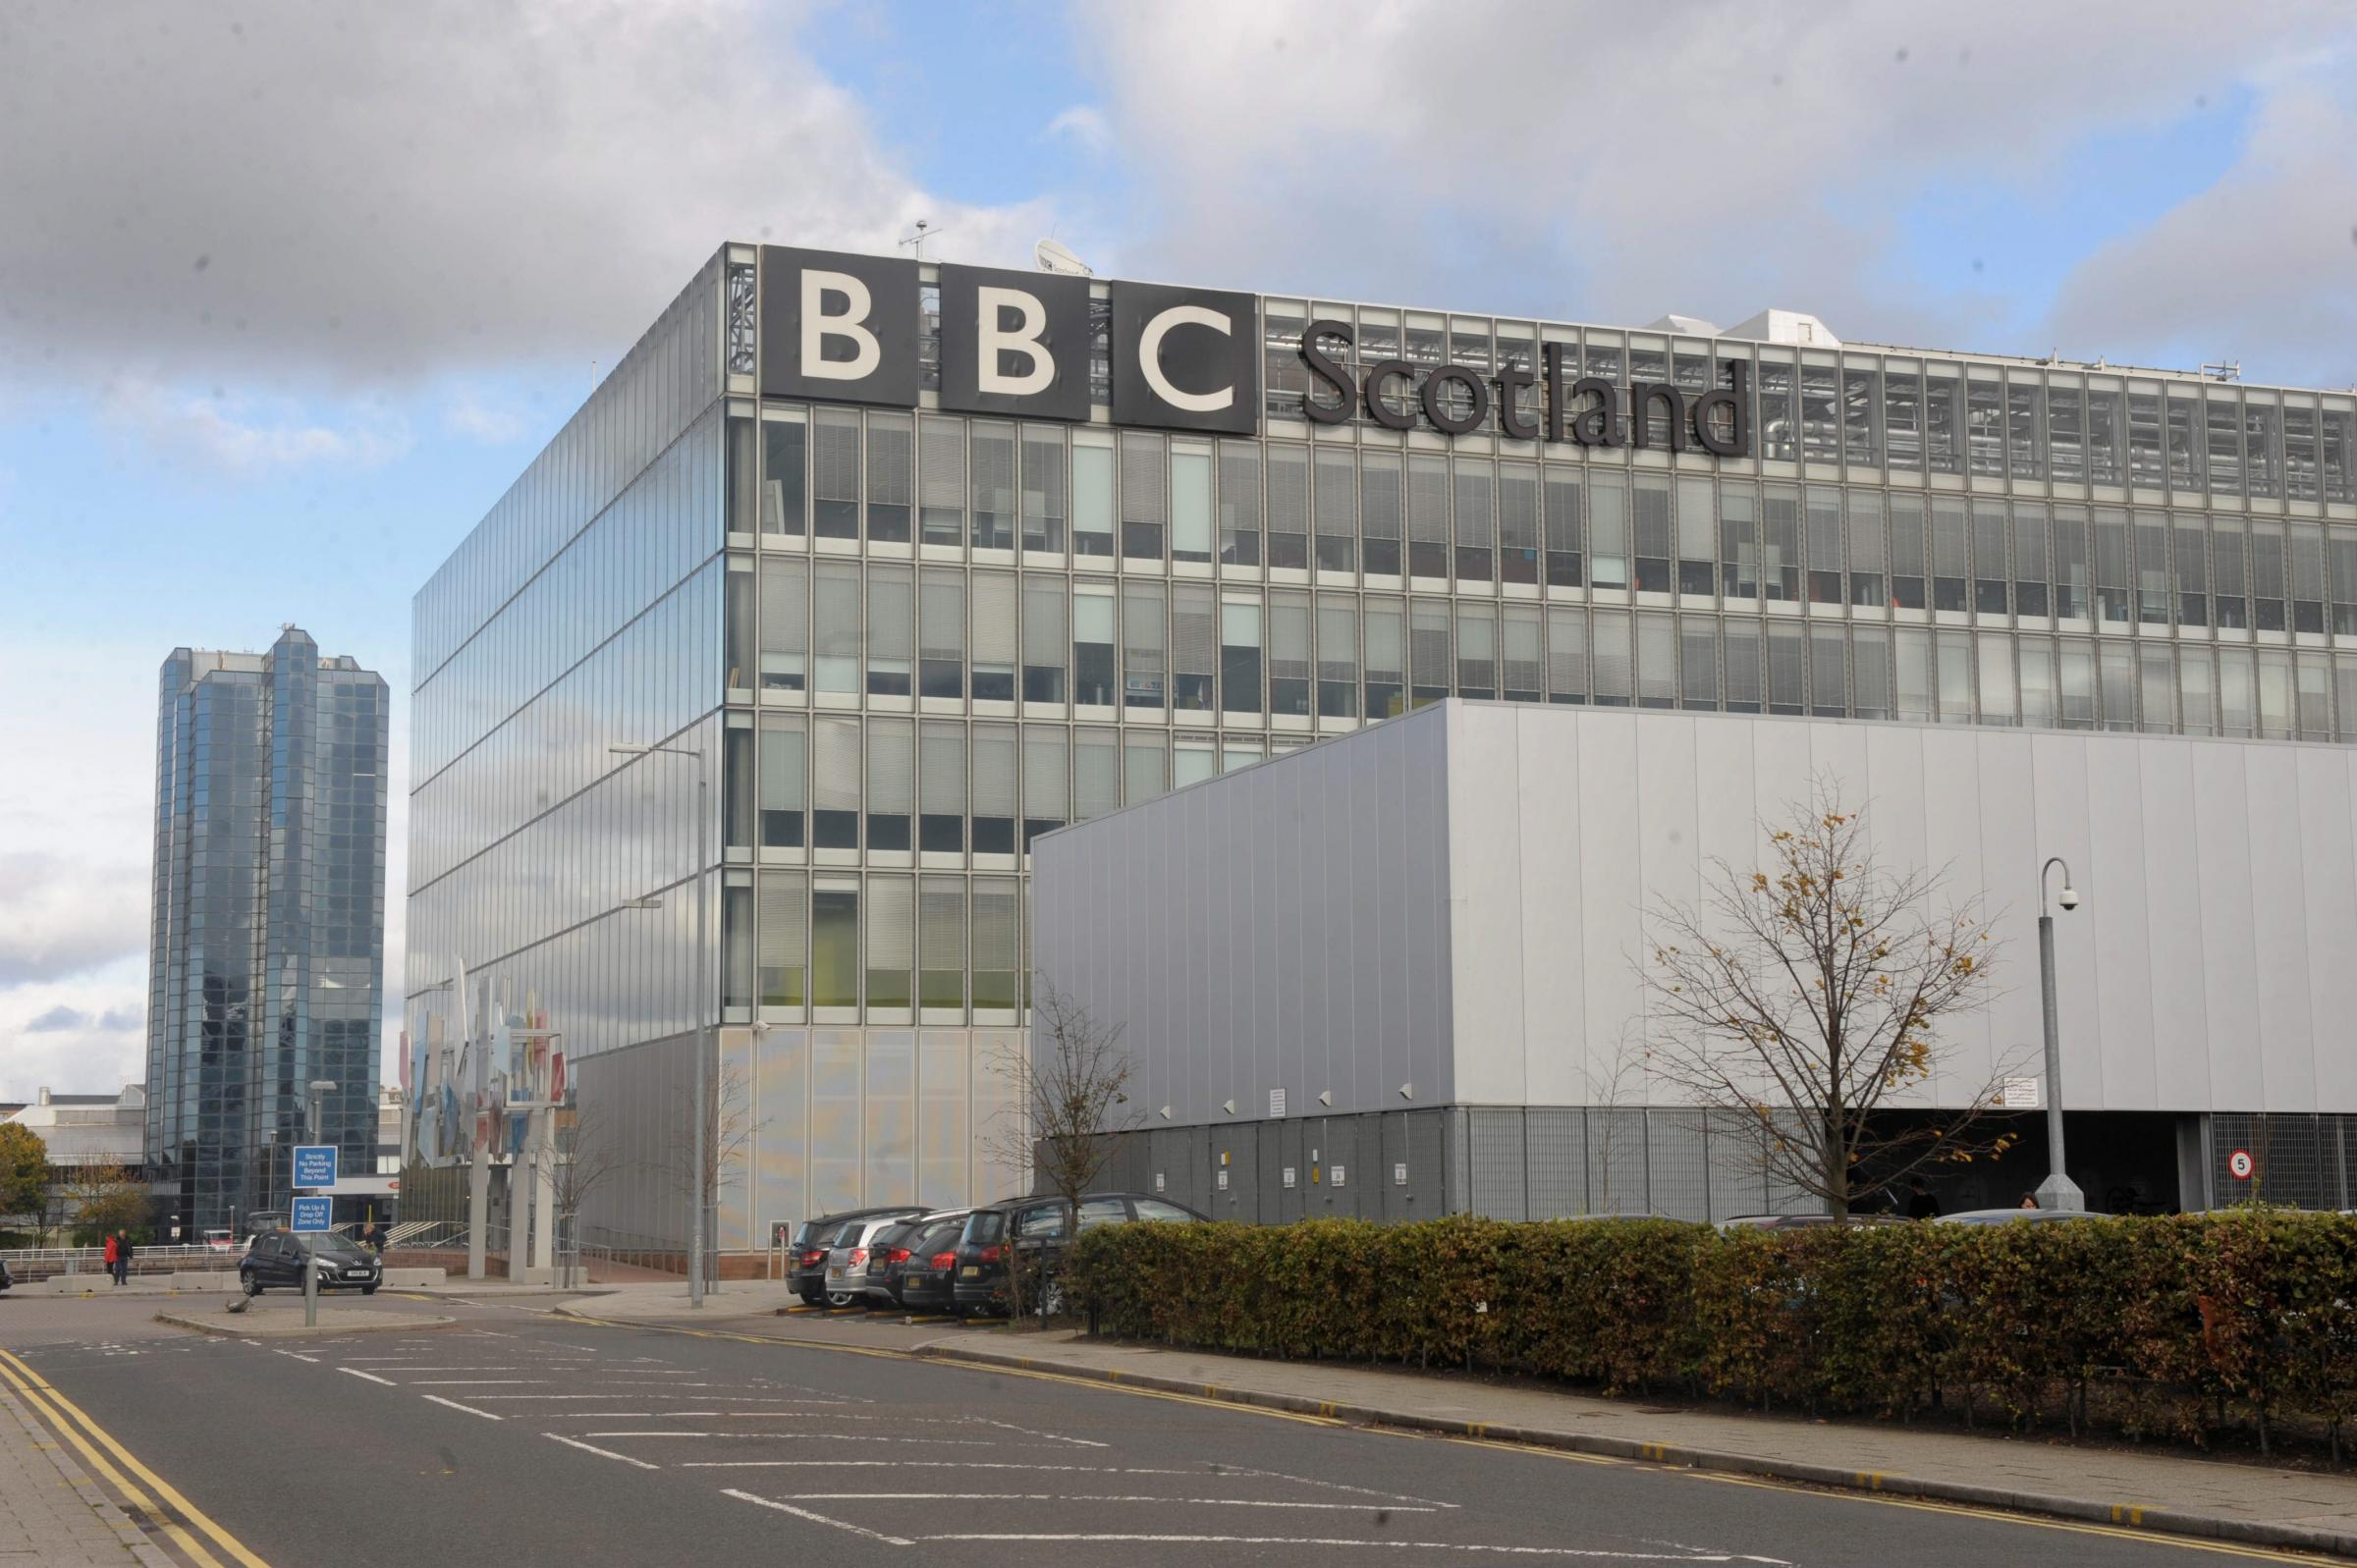 Picture: Kirsty Anderson. The BBC Scotland building at Pacific Quay, Glasgow.